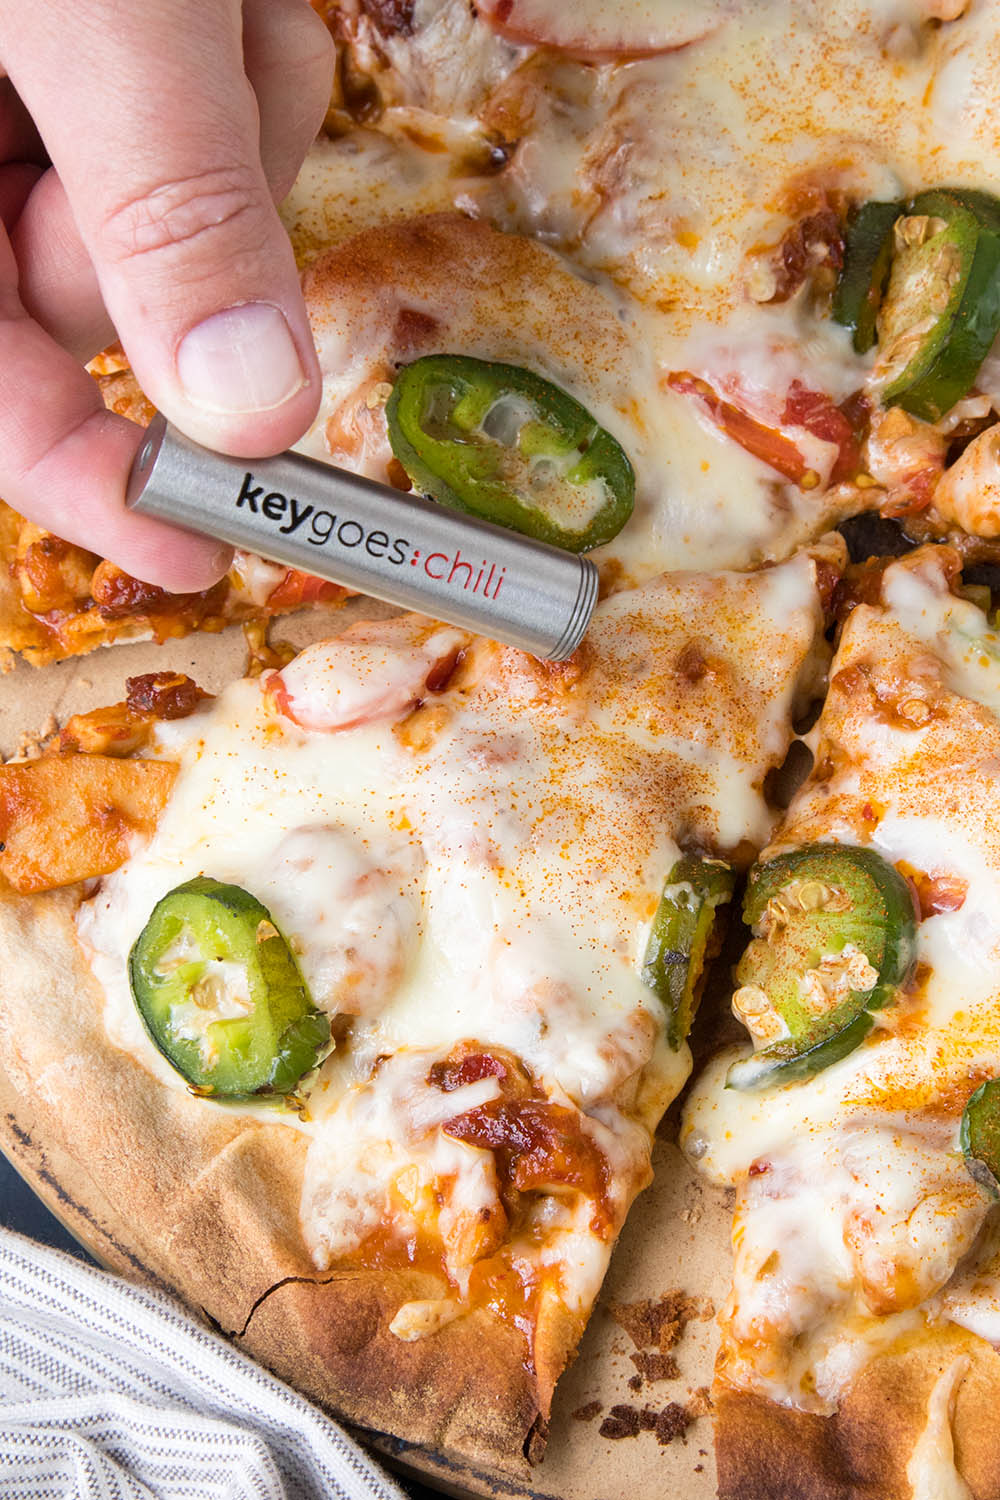 Adding some Superhot Chili Powder to my Pizza with Keygoes